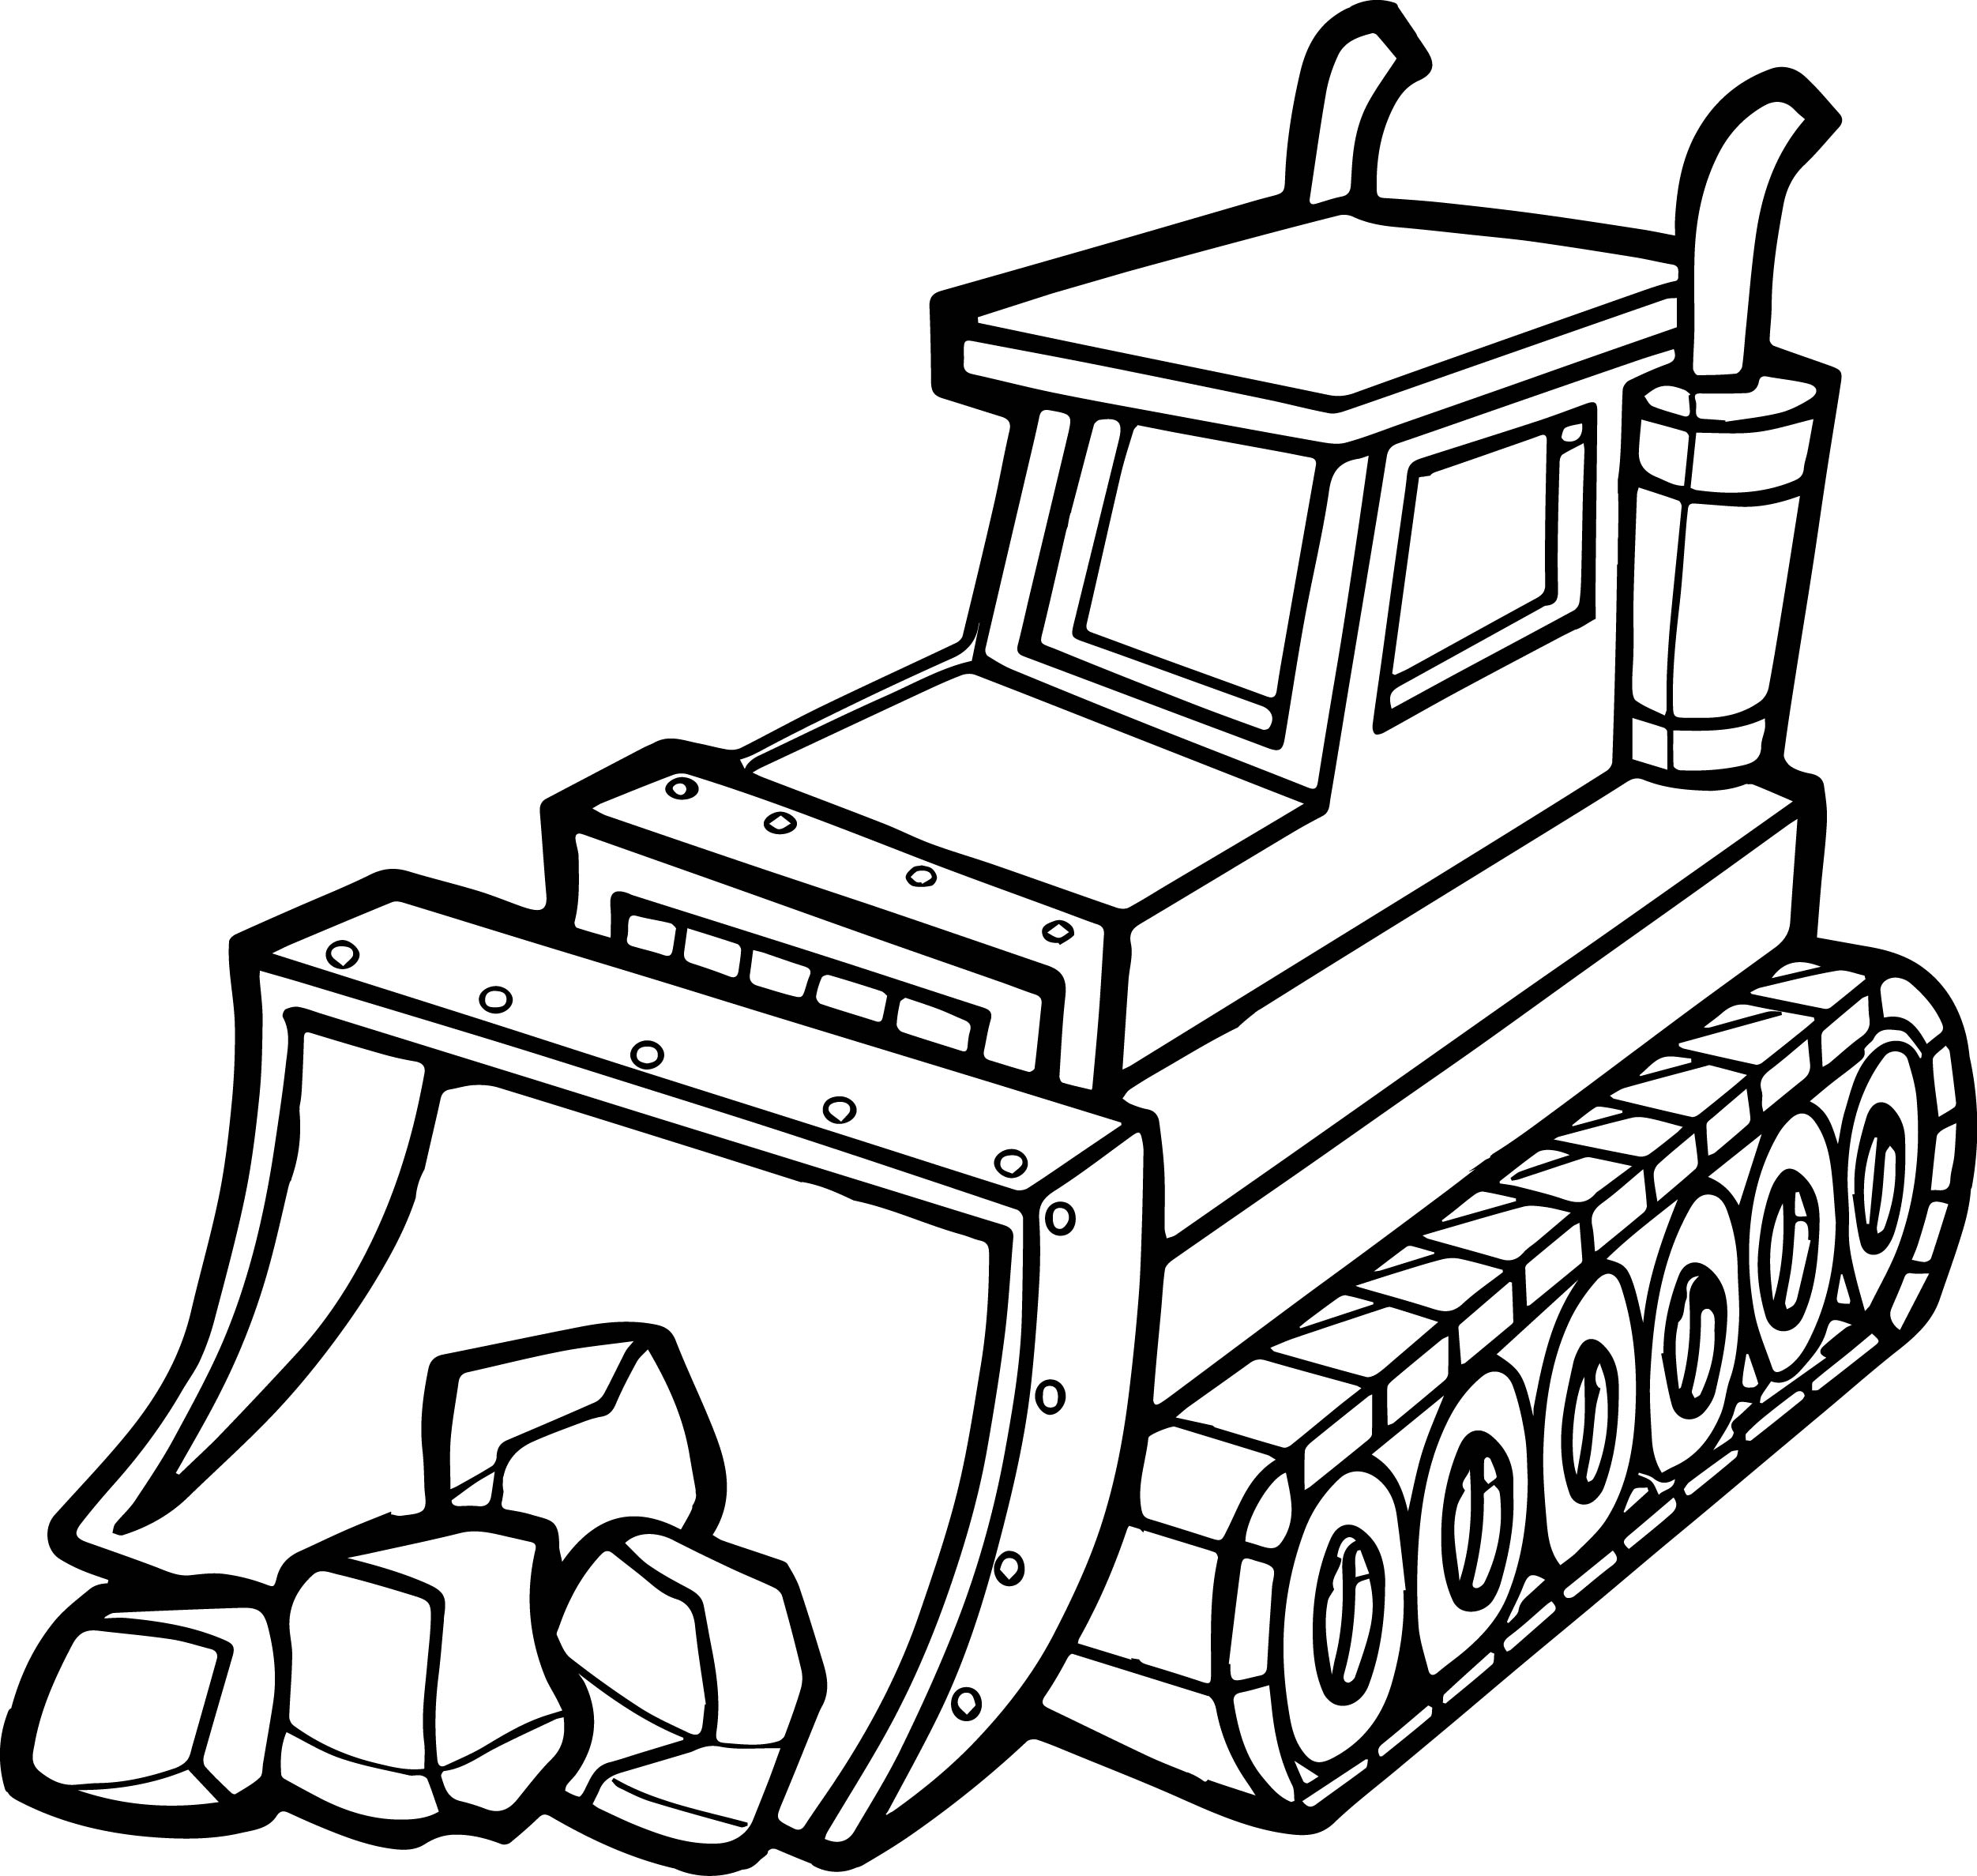 2503x2375 Backhoe Coloring Page